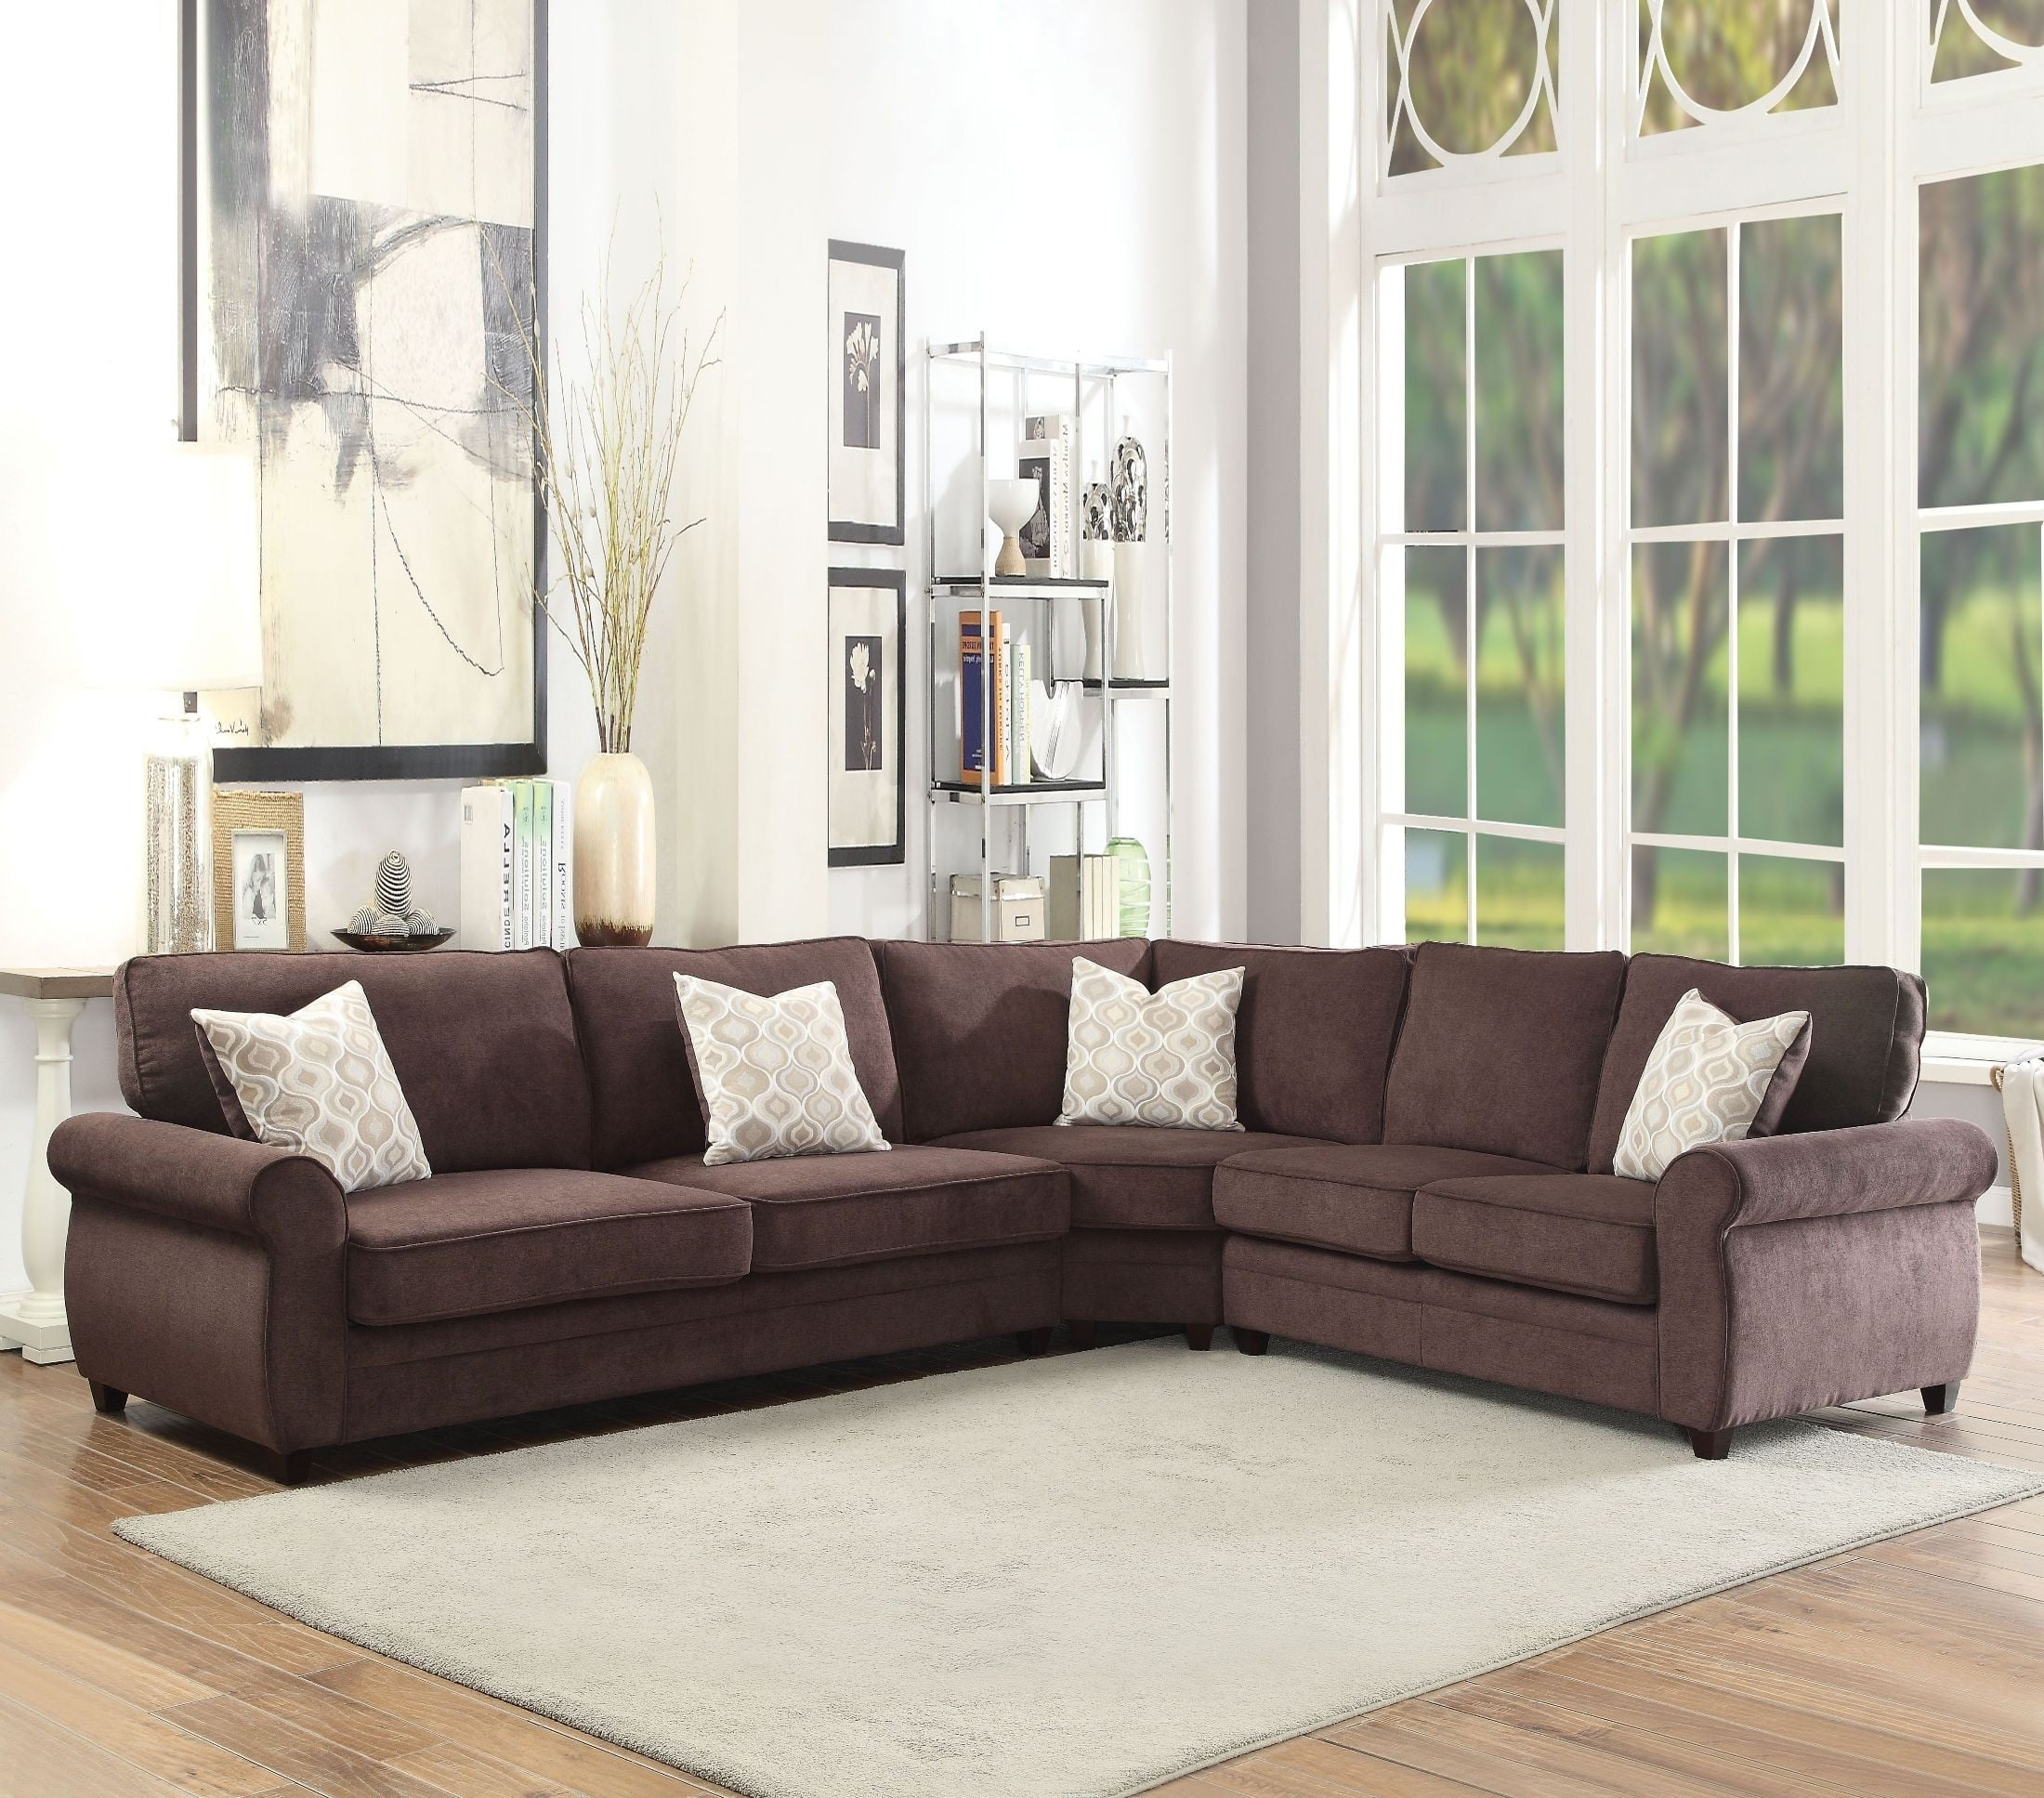 Sectional Sofas At Barrie With Well Liked Randolph Chocolate Chenille Sectional Sofa Sleeper From Acme (View 18 of 20)